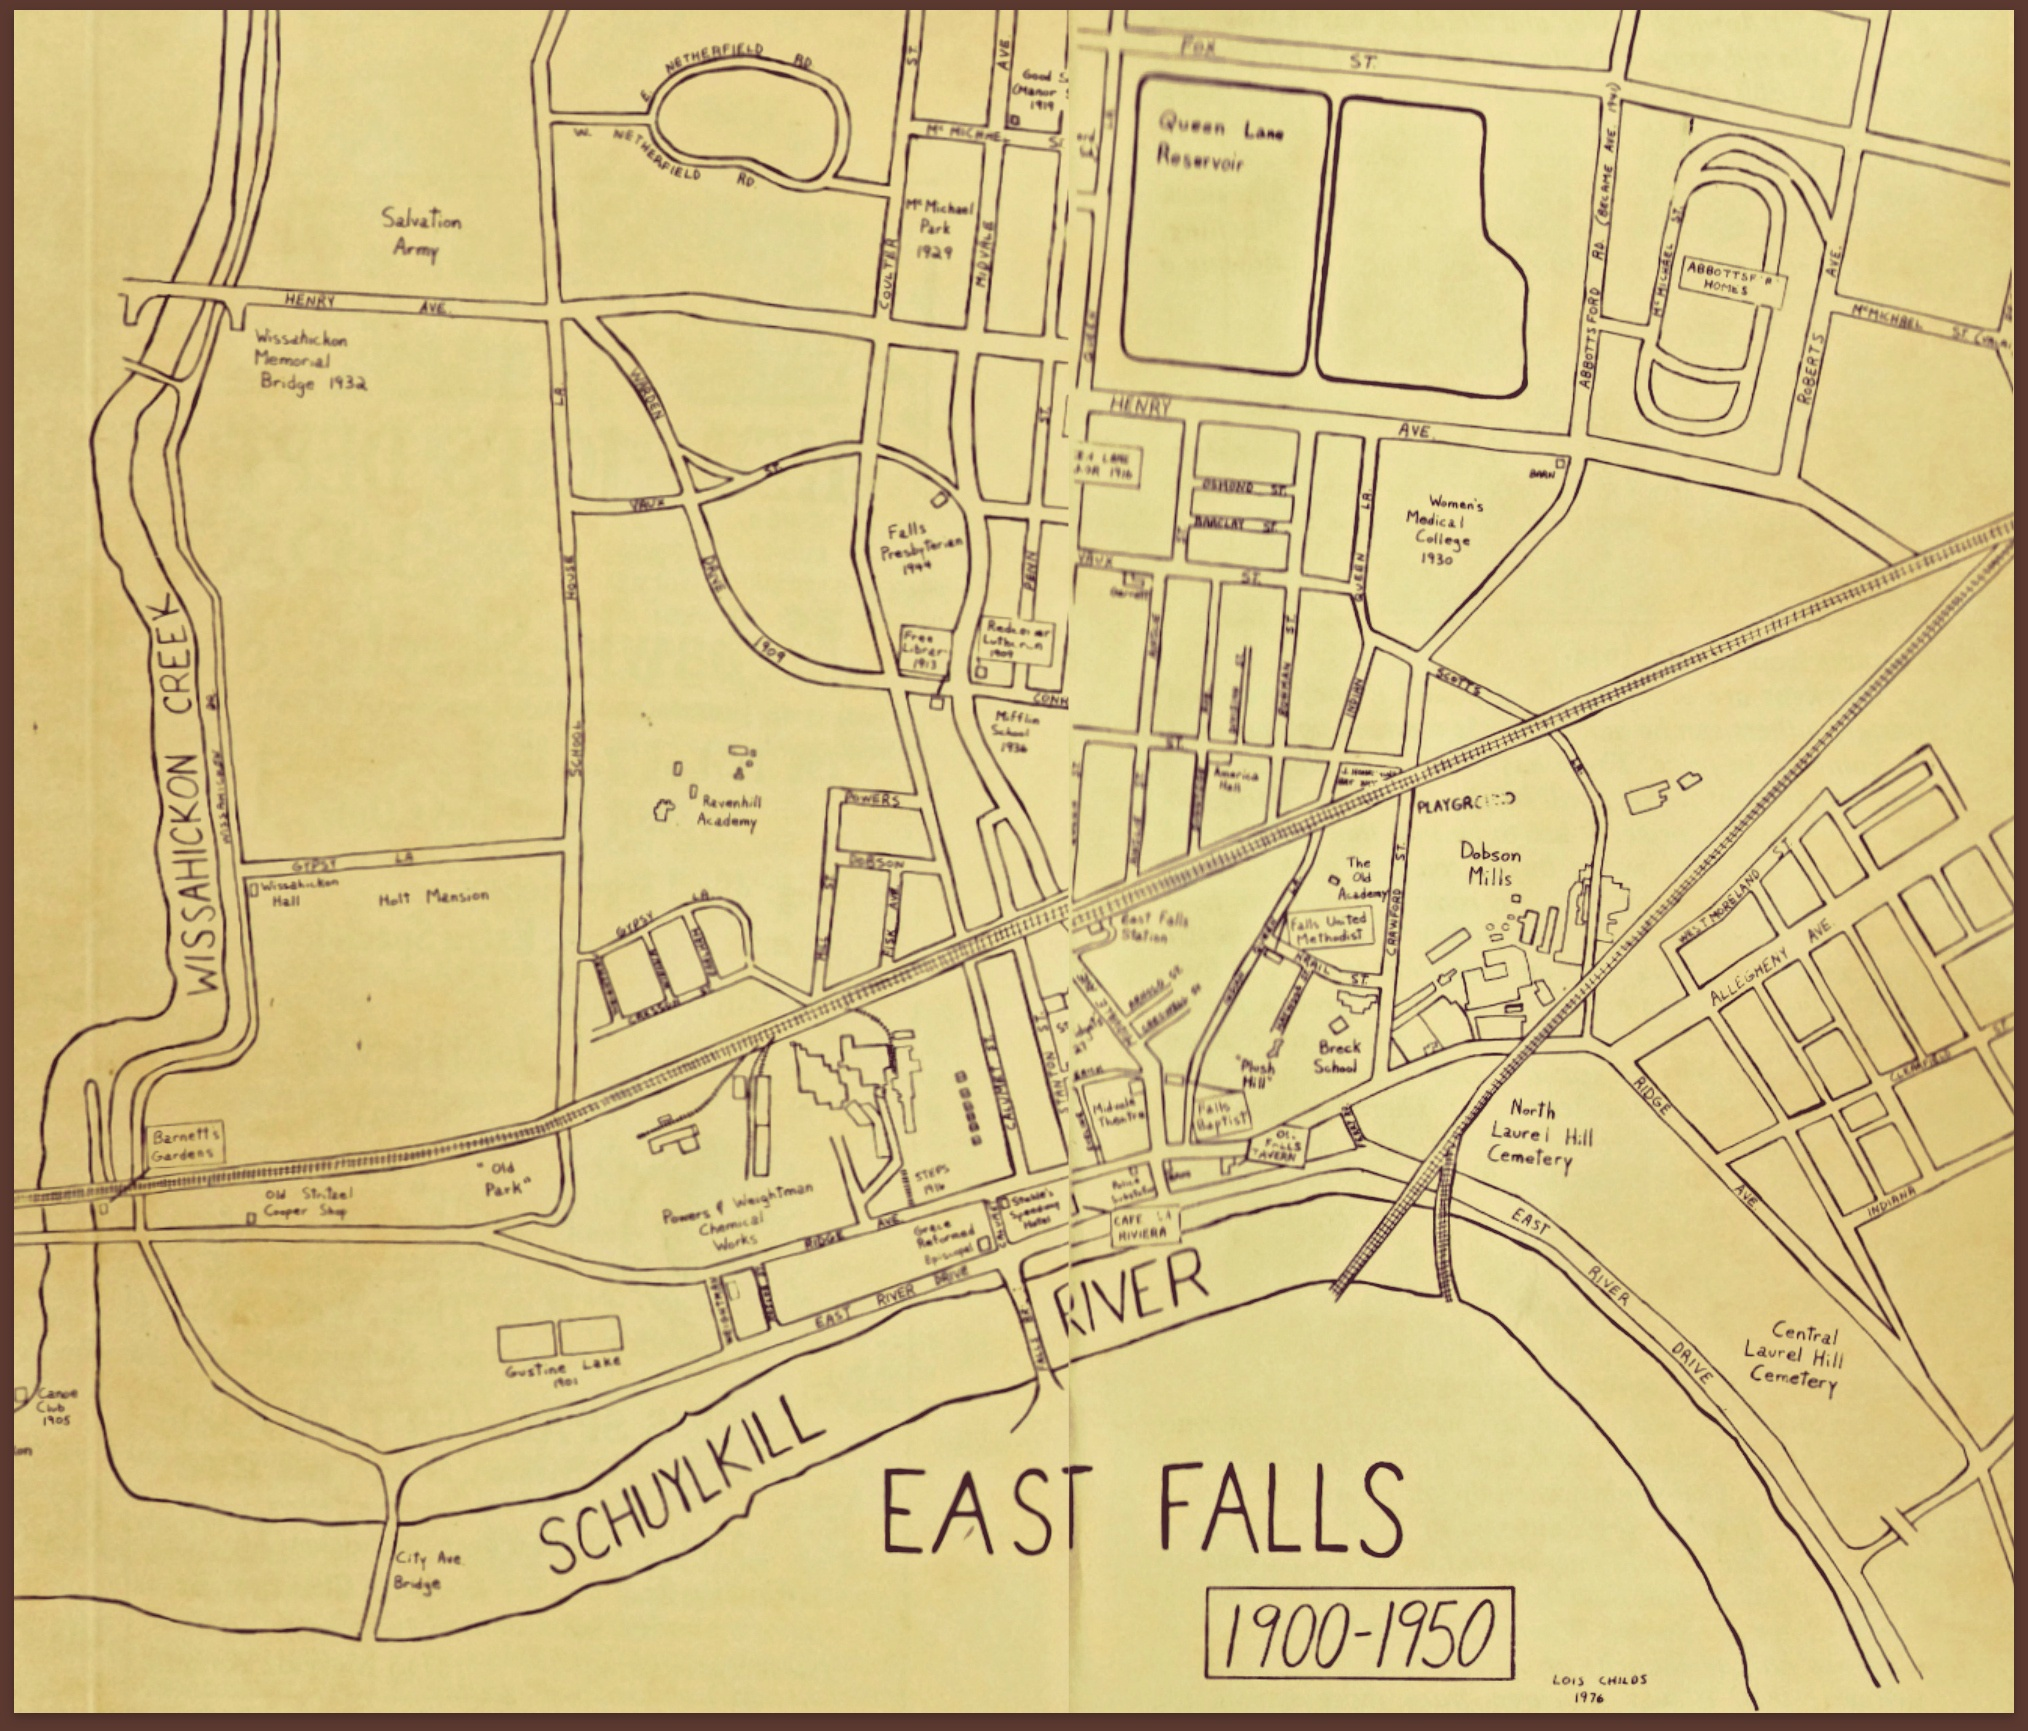 East Falls Local 300 years map 1900 to 1950 guest blogger russ gardner, sr \u201cgrowing up in east falls\u201d east dwyer 1950 wiring diagram at panicattacktreatment.co